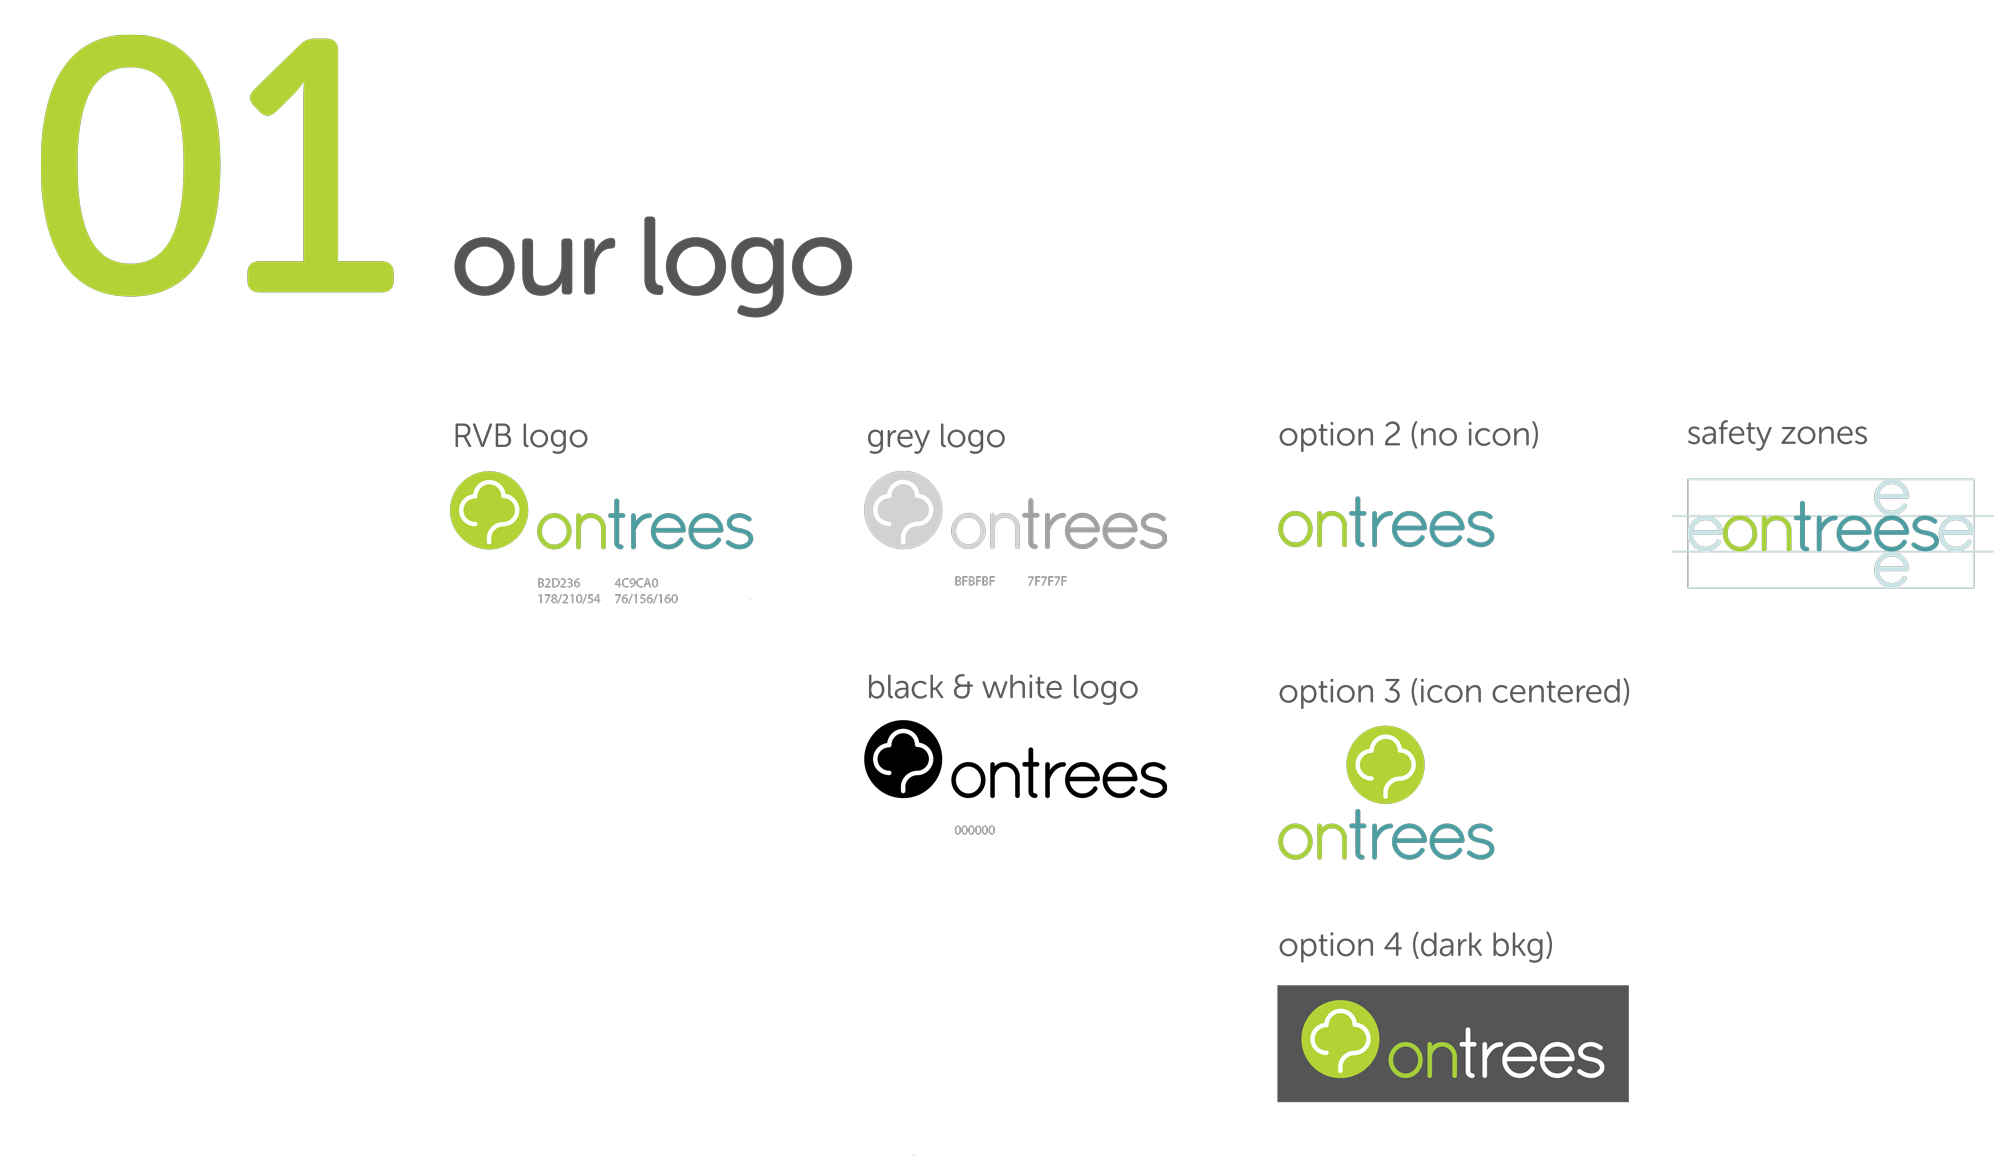 ontrees_brand_guidelines-2.png